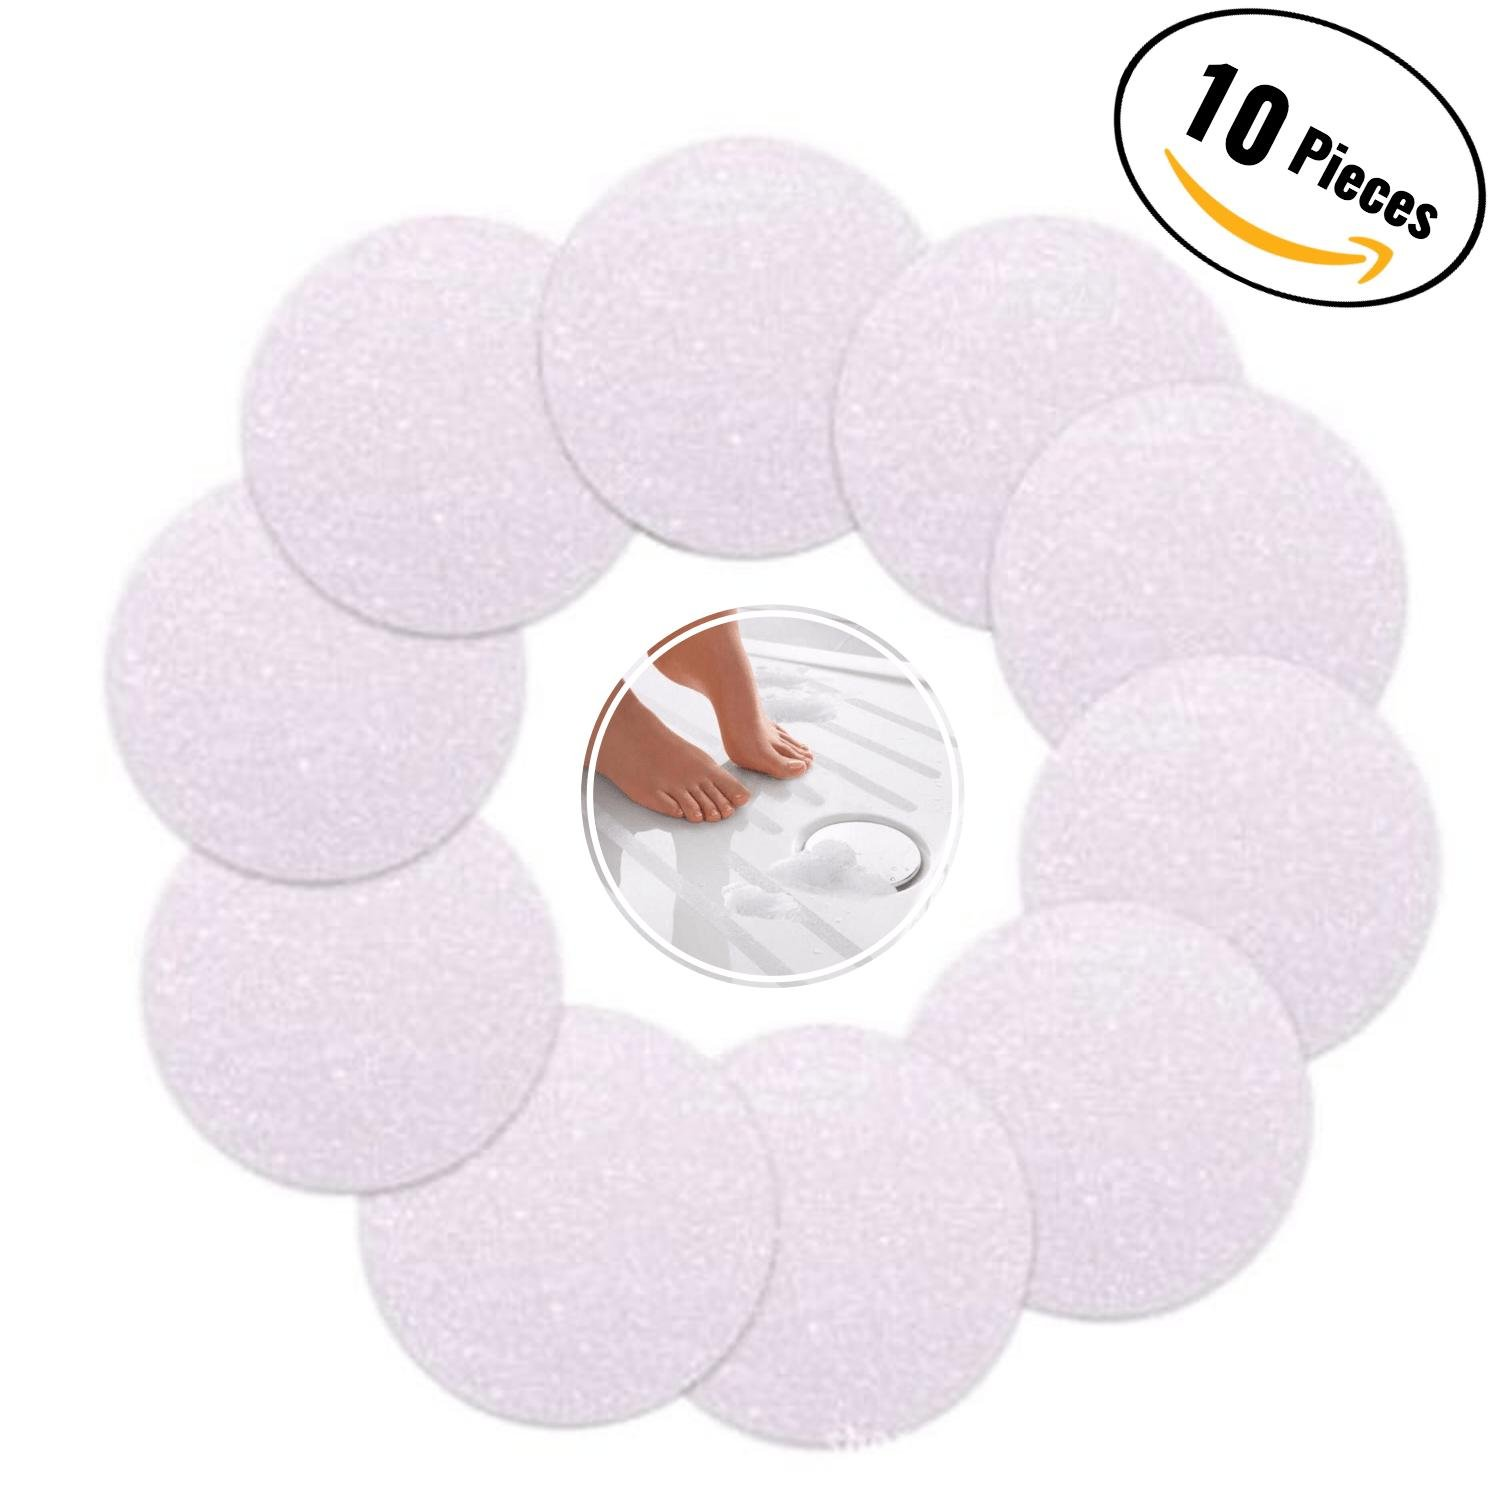 Non Slip Safety Shower Grip Treads To Prevent Slippery Surfaces In The Bathtub 10 Clear PEVA Discs Anti-Slip Stickers